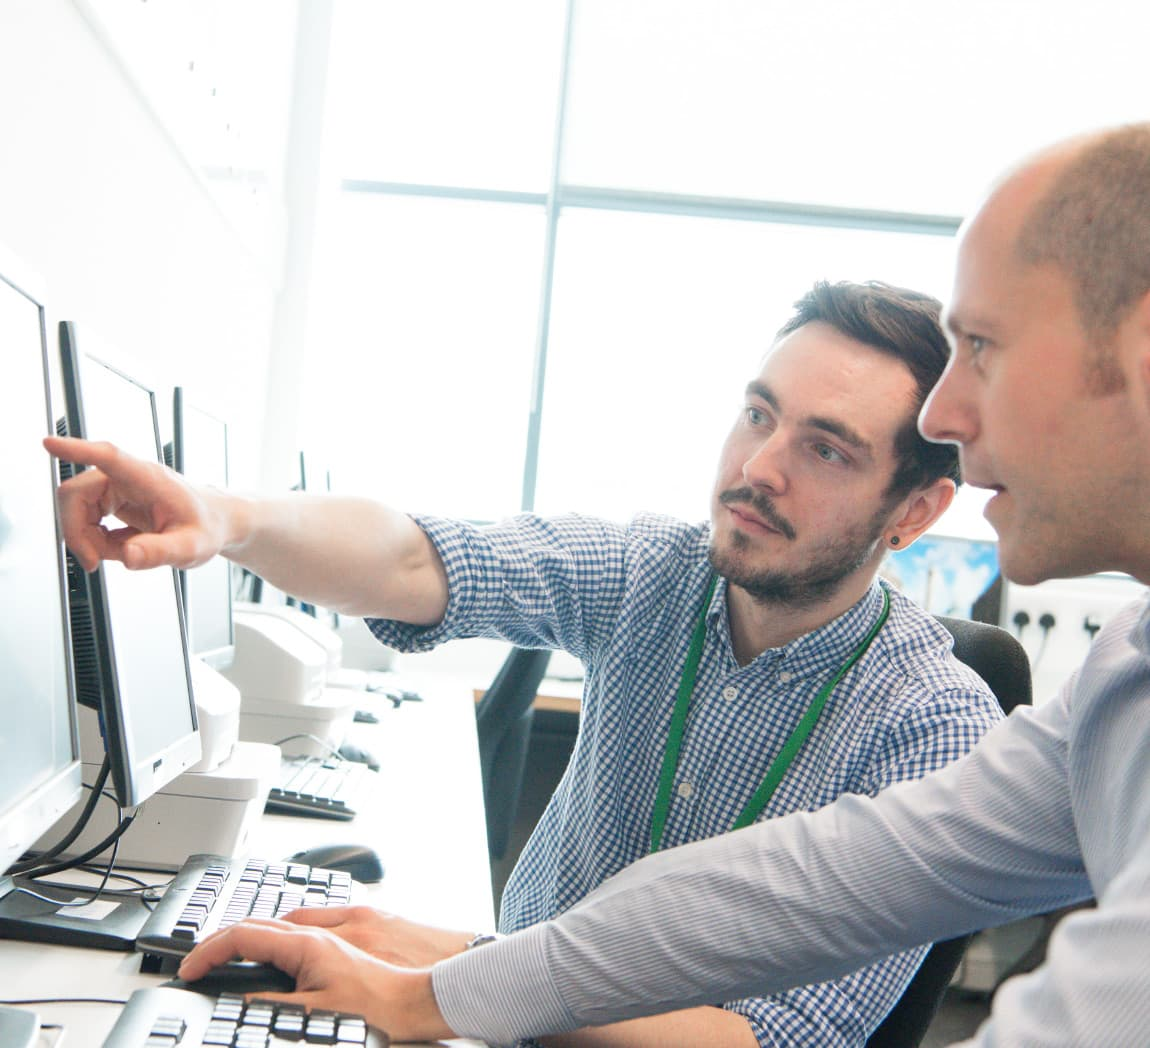 Two men working at a computer